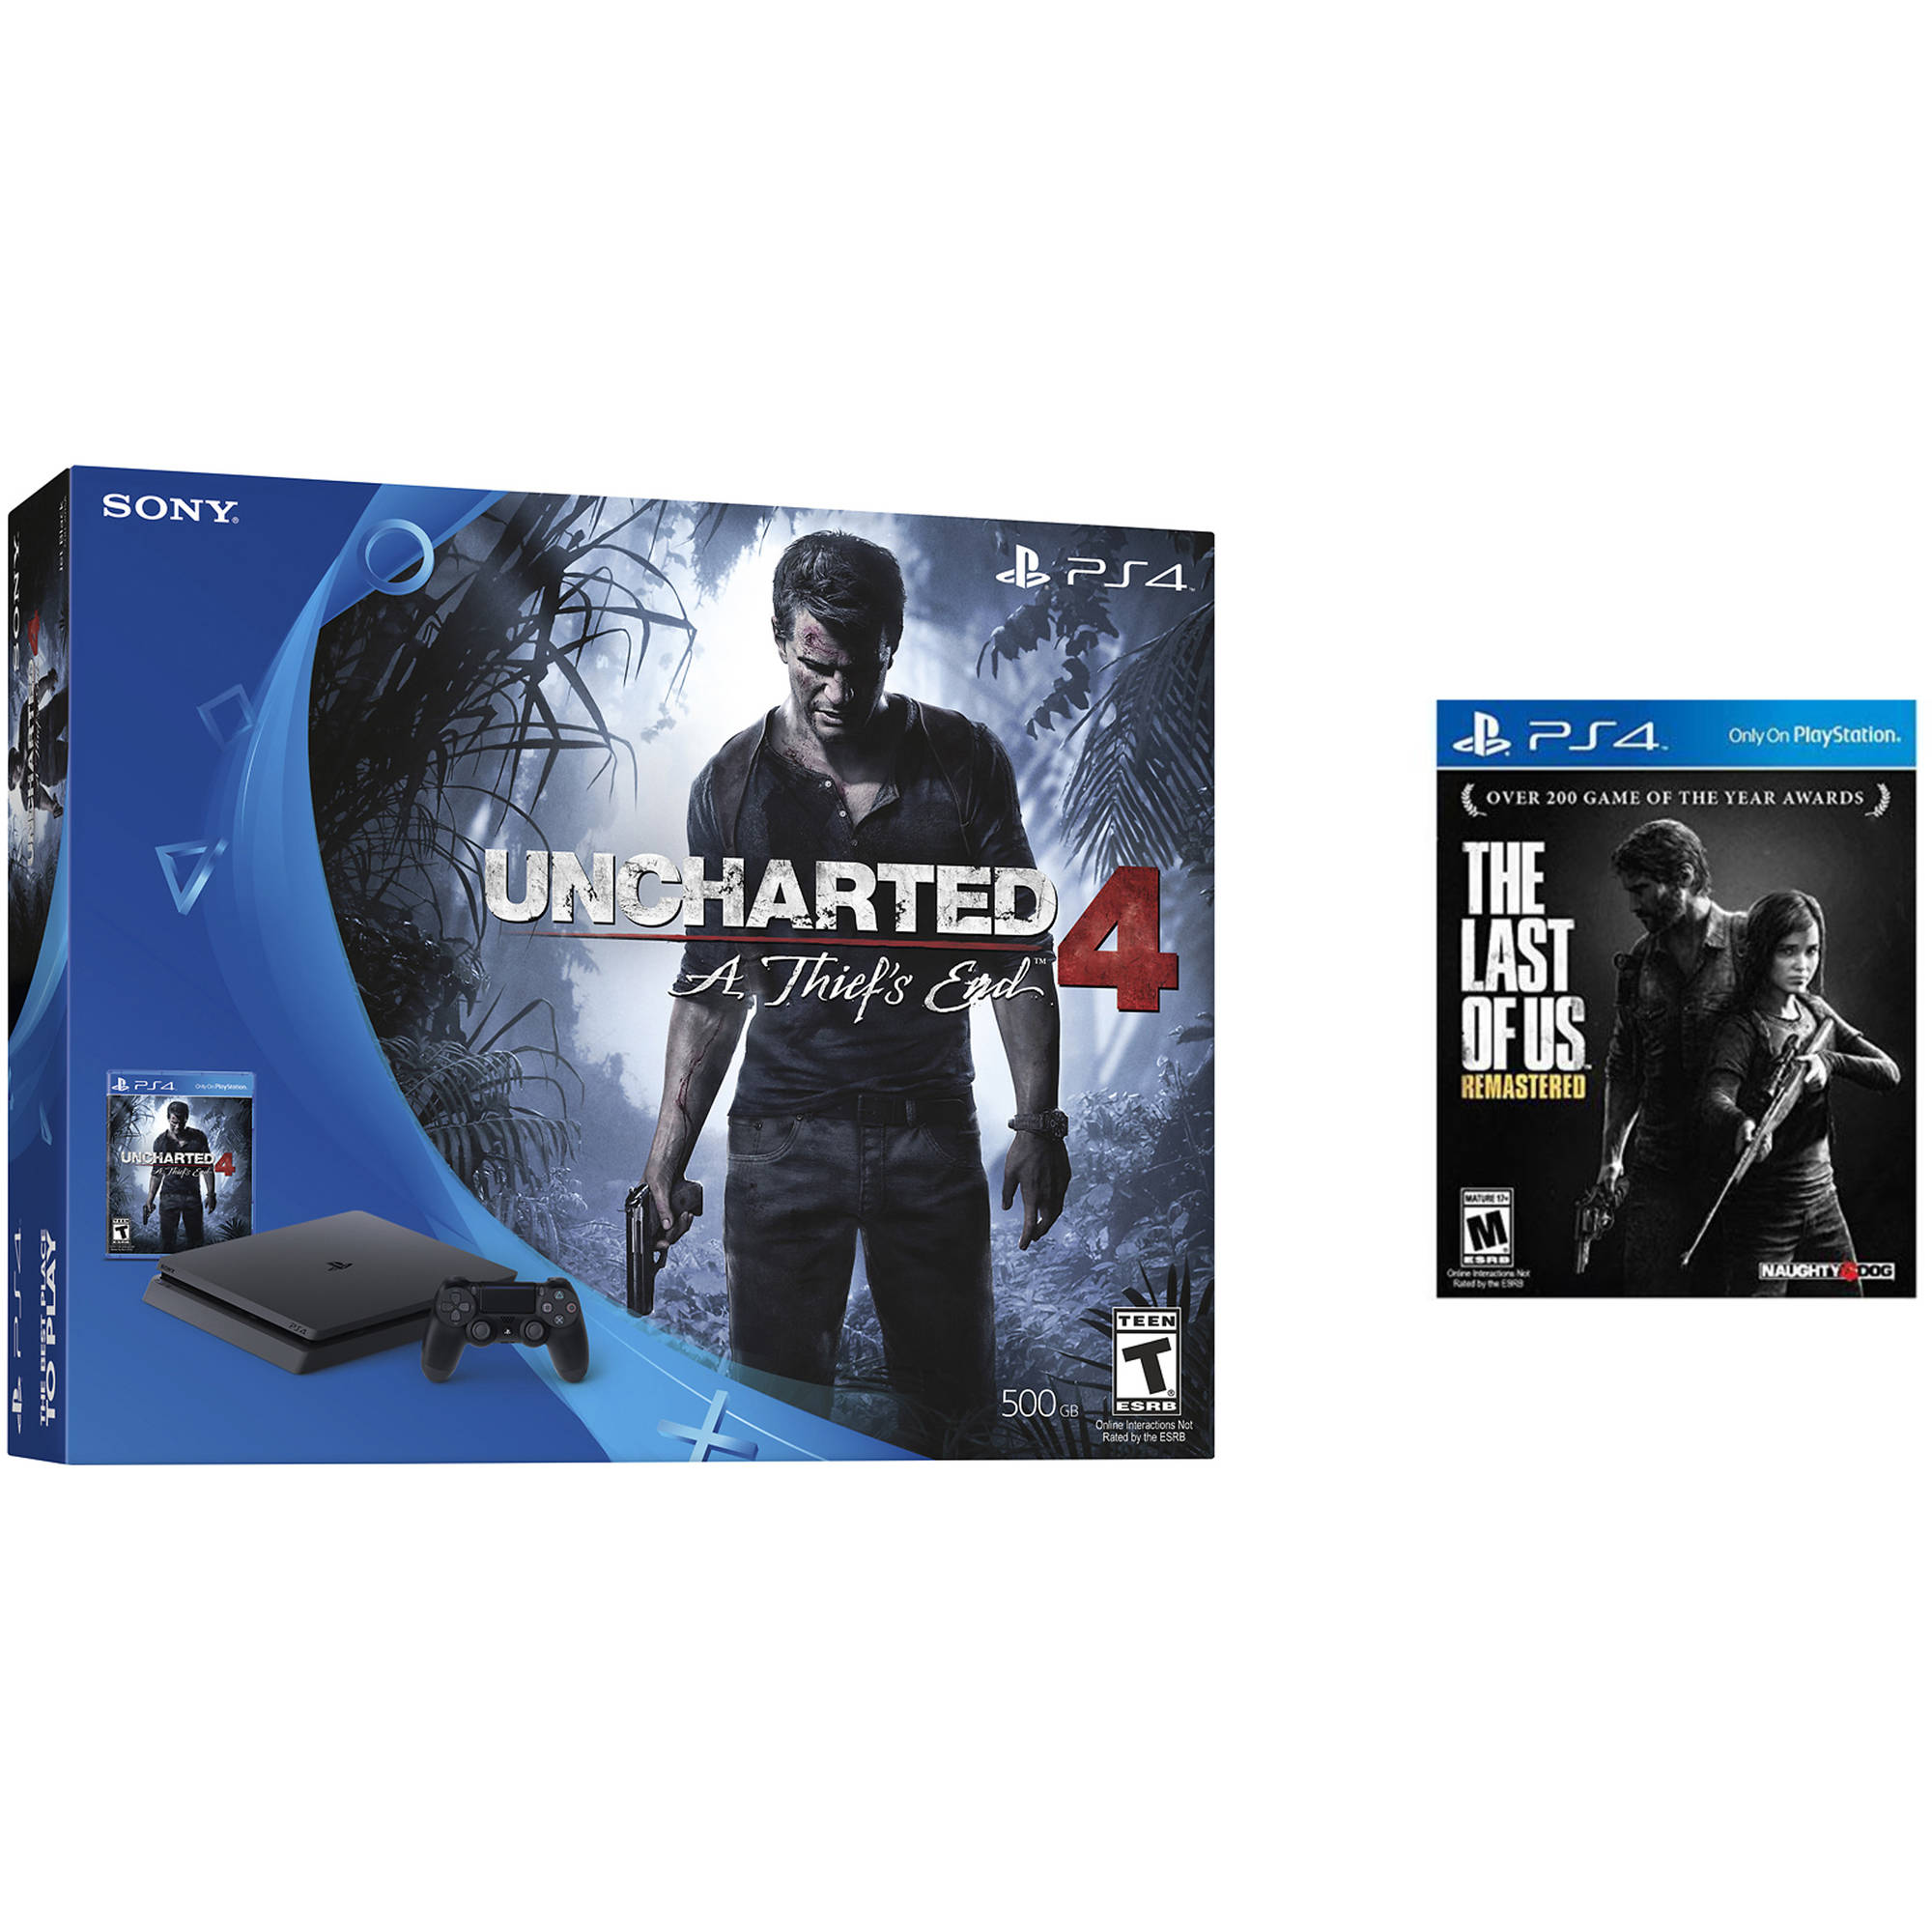 Image of Sony PlayStation 4 Kit 500GB Slim Uncharted 4 and The Last of Us Remastered Bundle